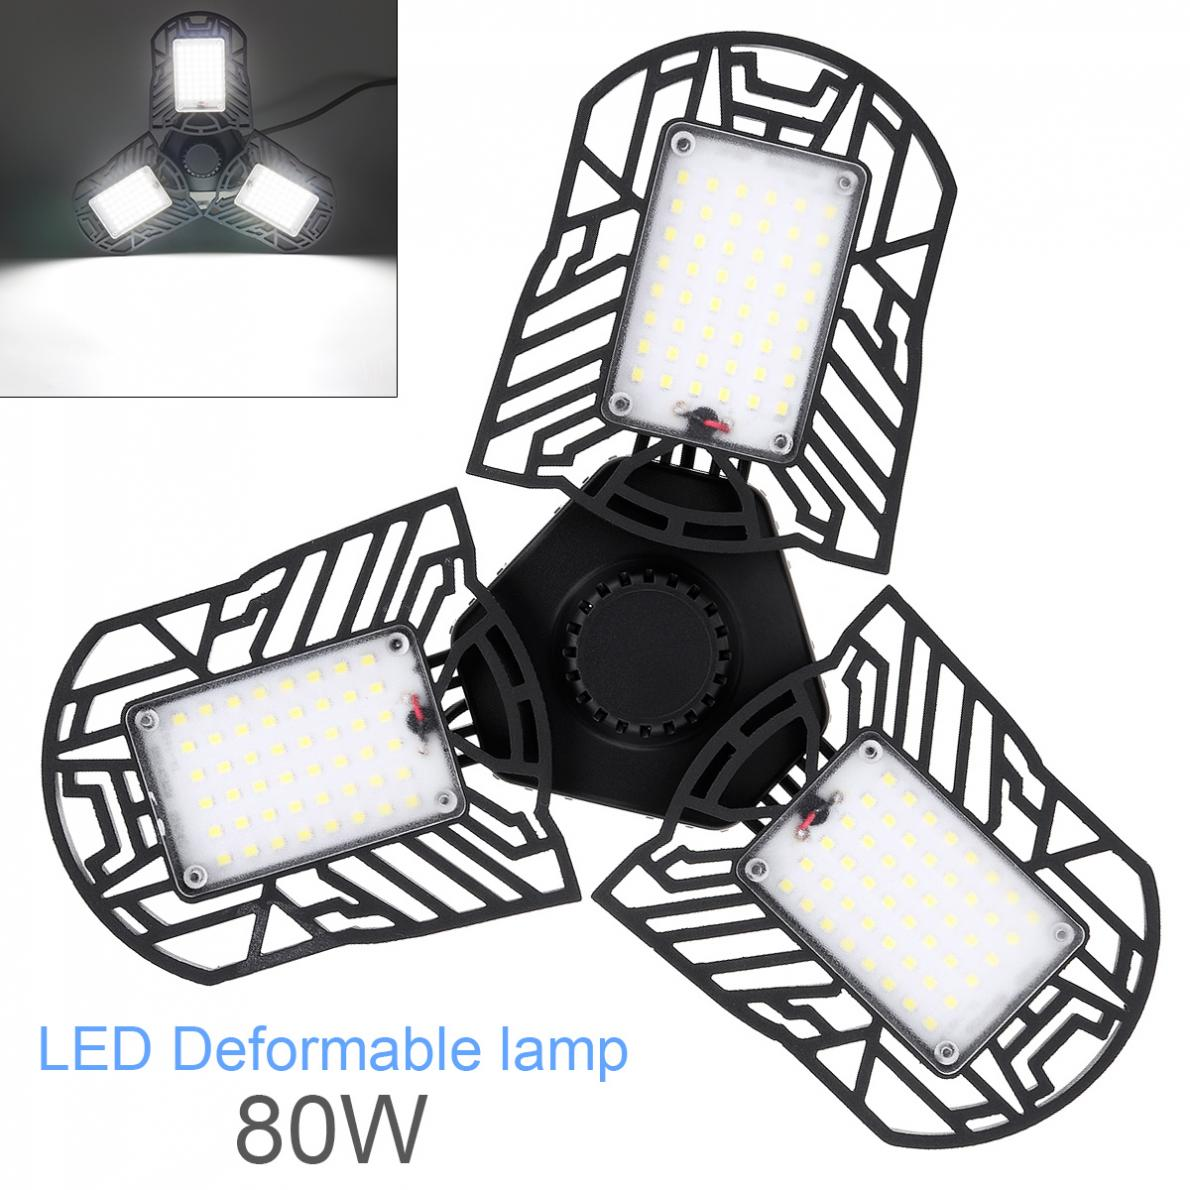 <font><b>60W</b></font> 6000LM E27 <font><b>LED</b></font> <font><b>Floodlight</b></font> Radar Induction Deformable Garage Light Super Bright Industrial Lighting for Warehouses Parking image